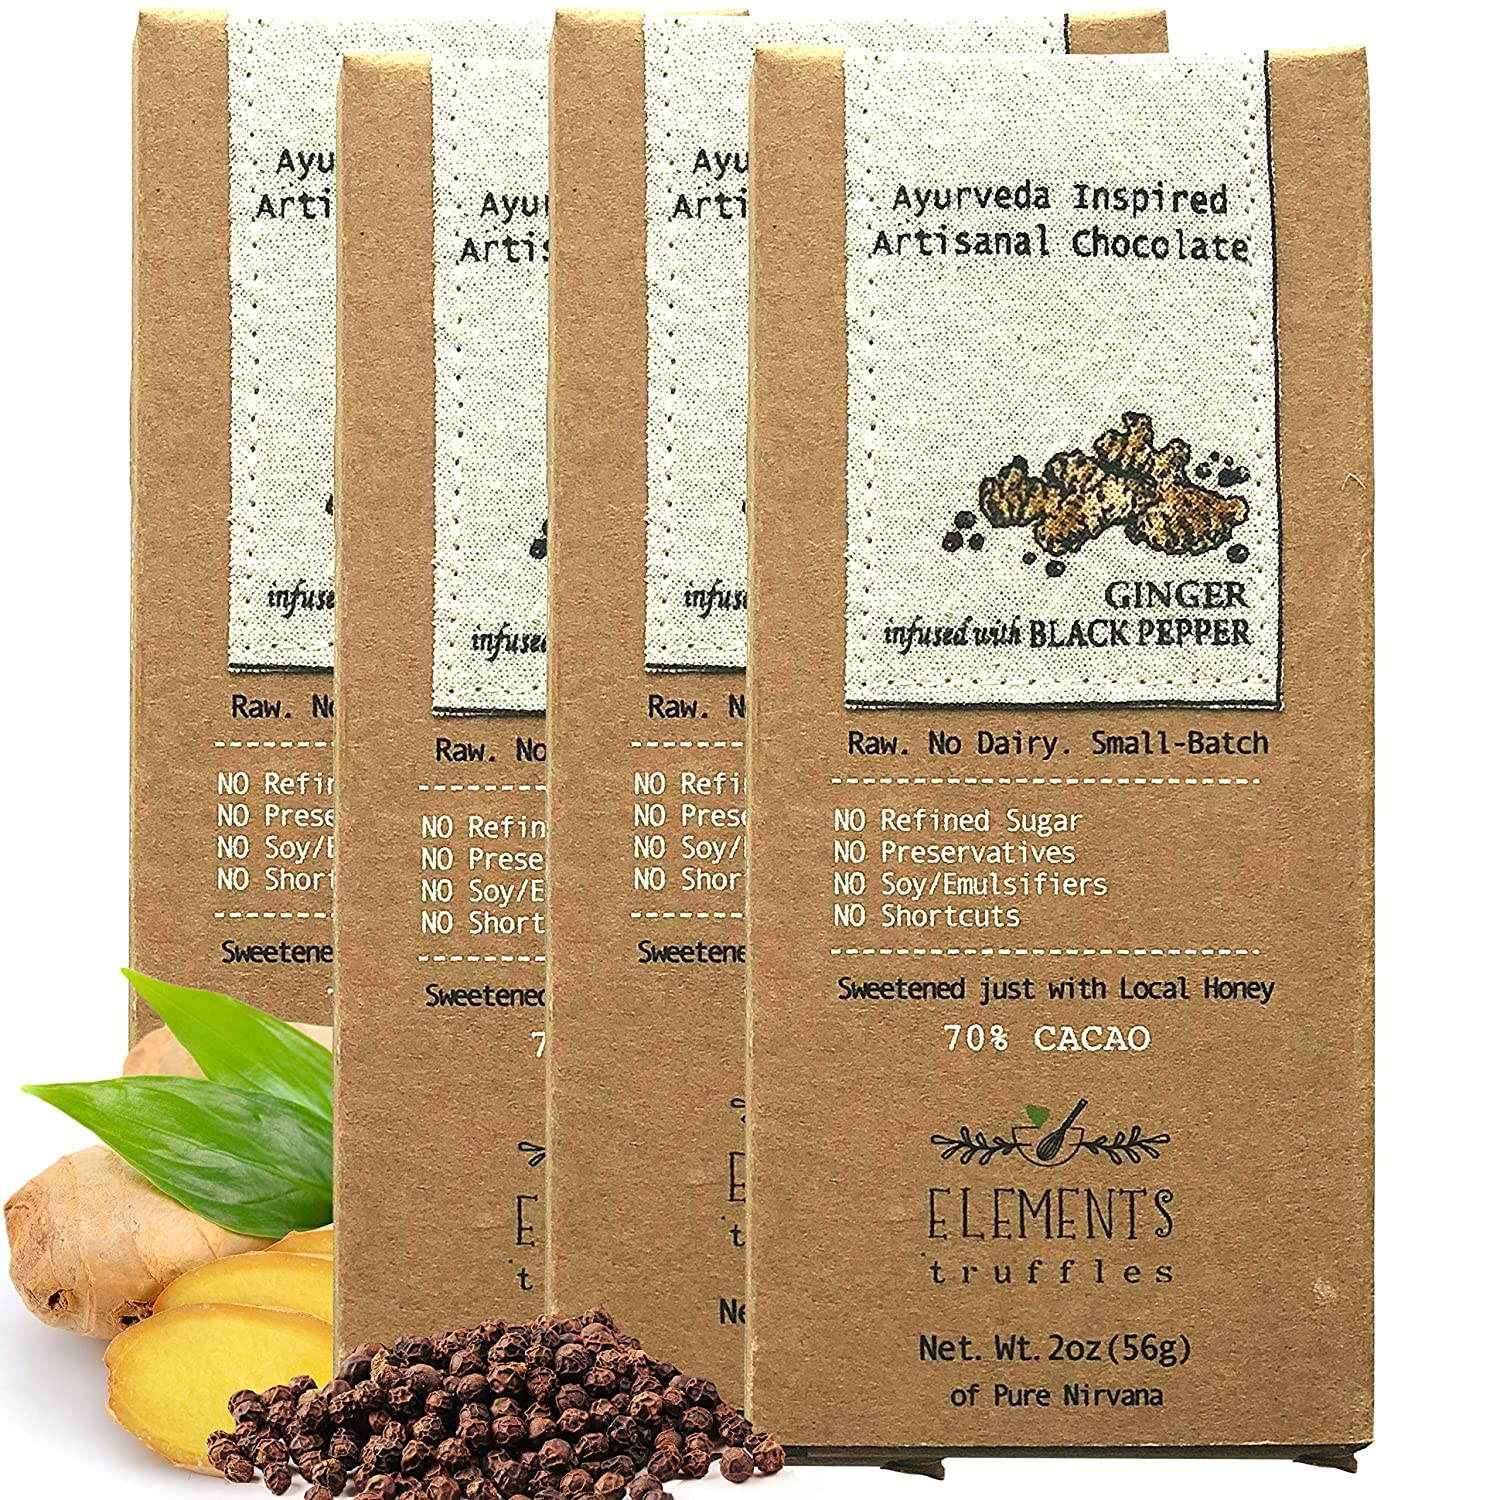 Elements Truffles Ginger Bar with Black Pepper Infusion - Dairy Free Chocolate Bar - Gluten Free, Non-GMO, Raw & Fully Organic Chocolate Bar - Ayurveda Inspired Healthy Chocolate Bar - Four Pack